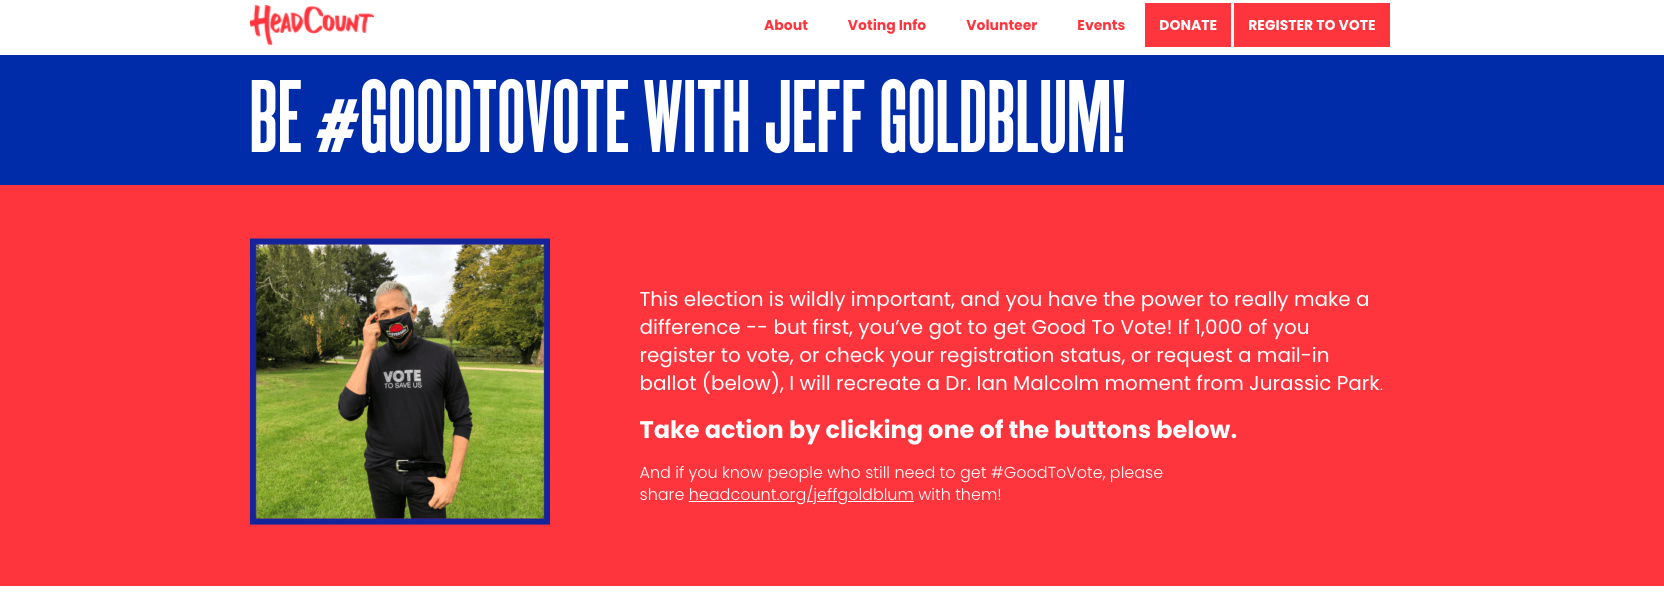 """The HeadCount page with """"Be #GoodToVote With Jeff Goldblum!"""" written on it along with a photo of him"""